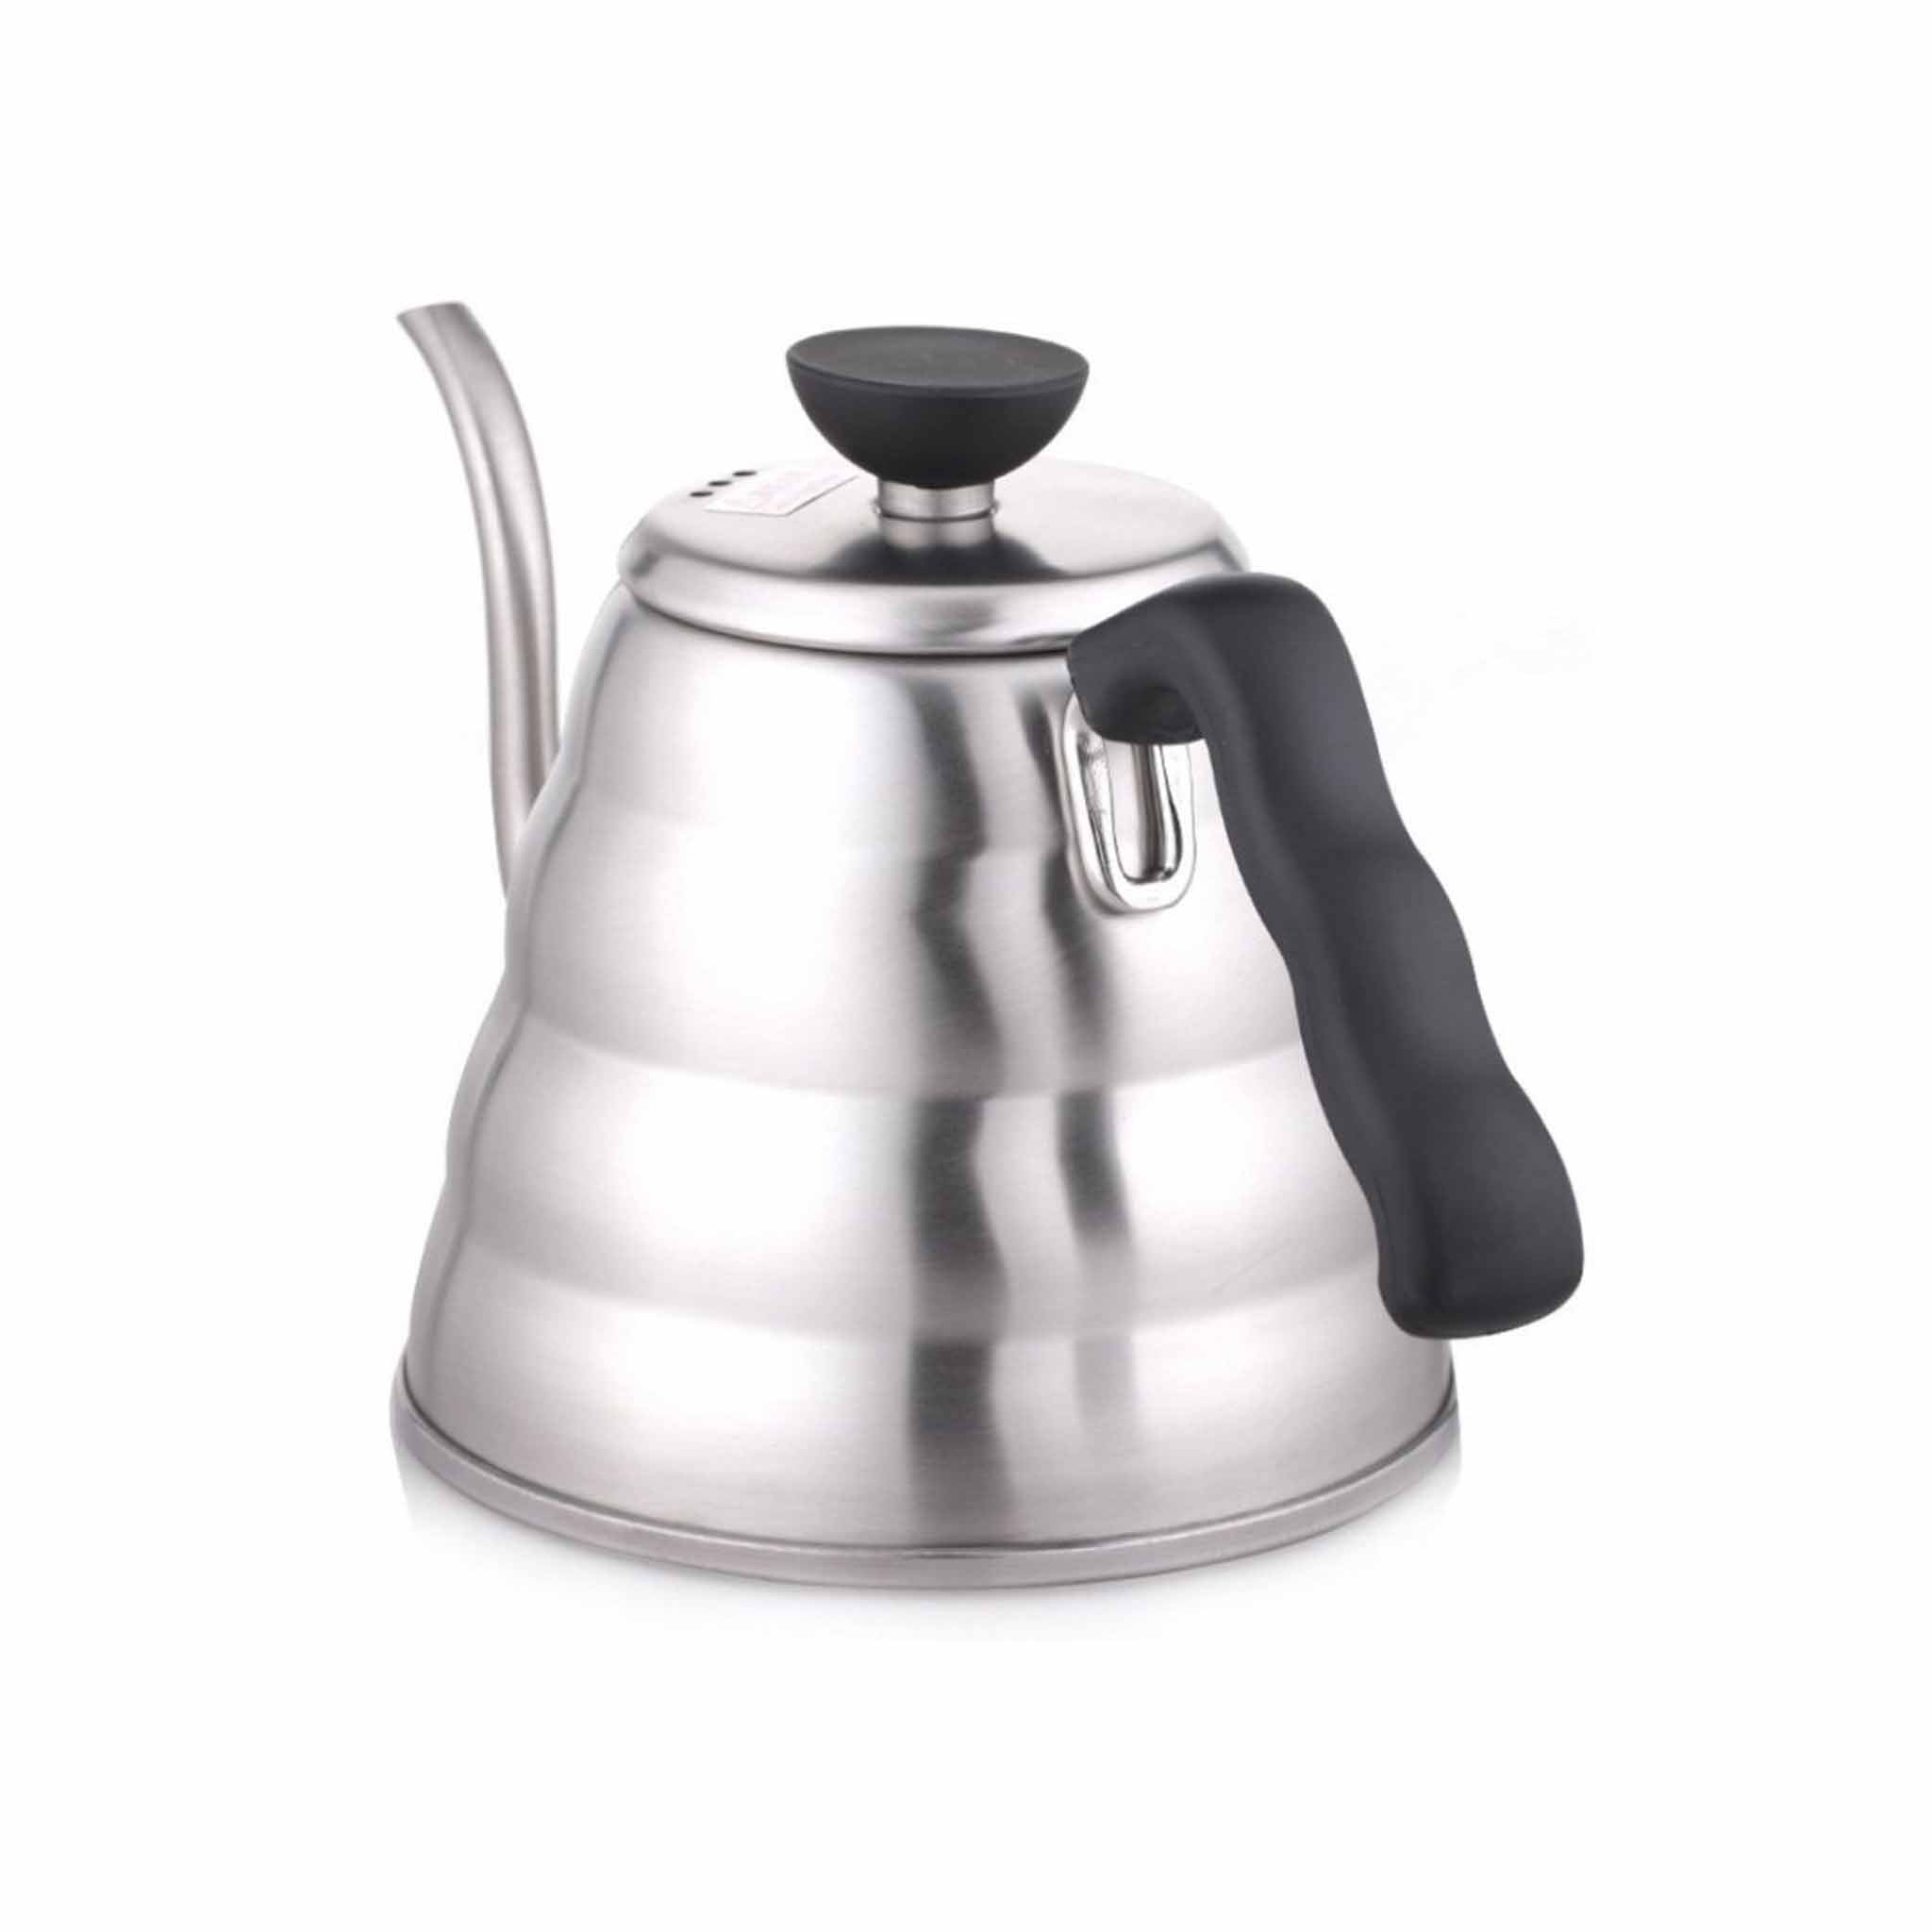 Hario Kettle Buono V60 Coffee Drip